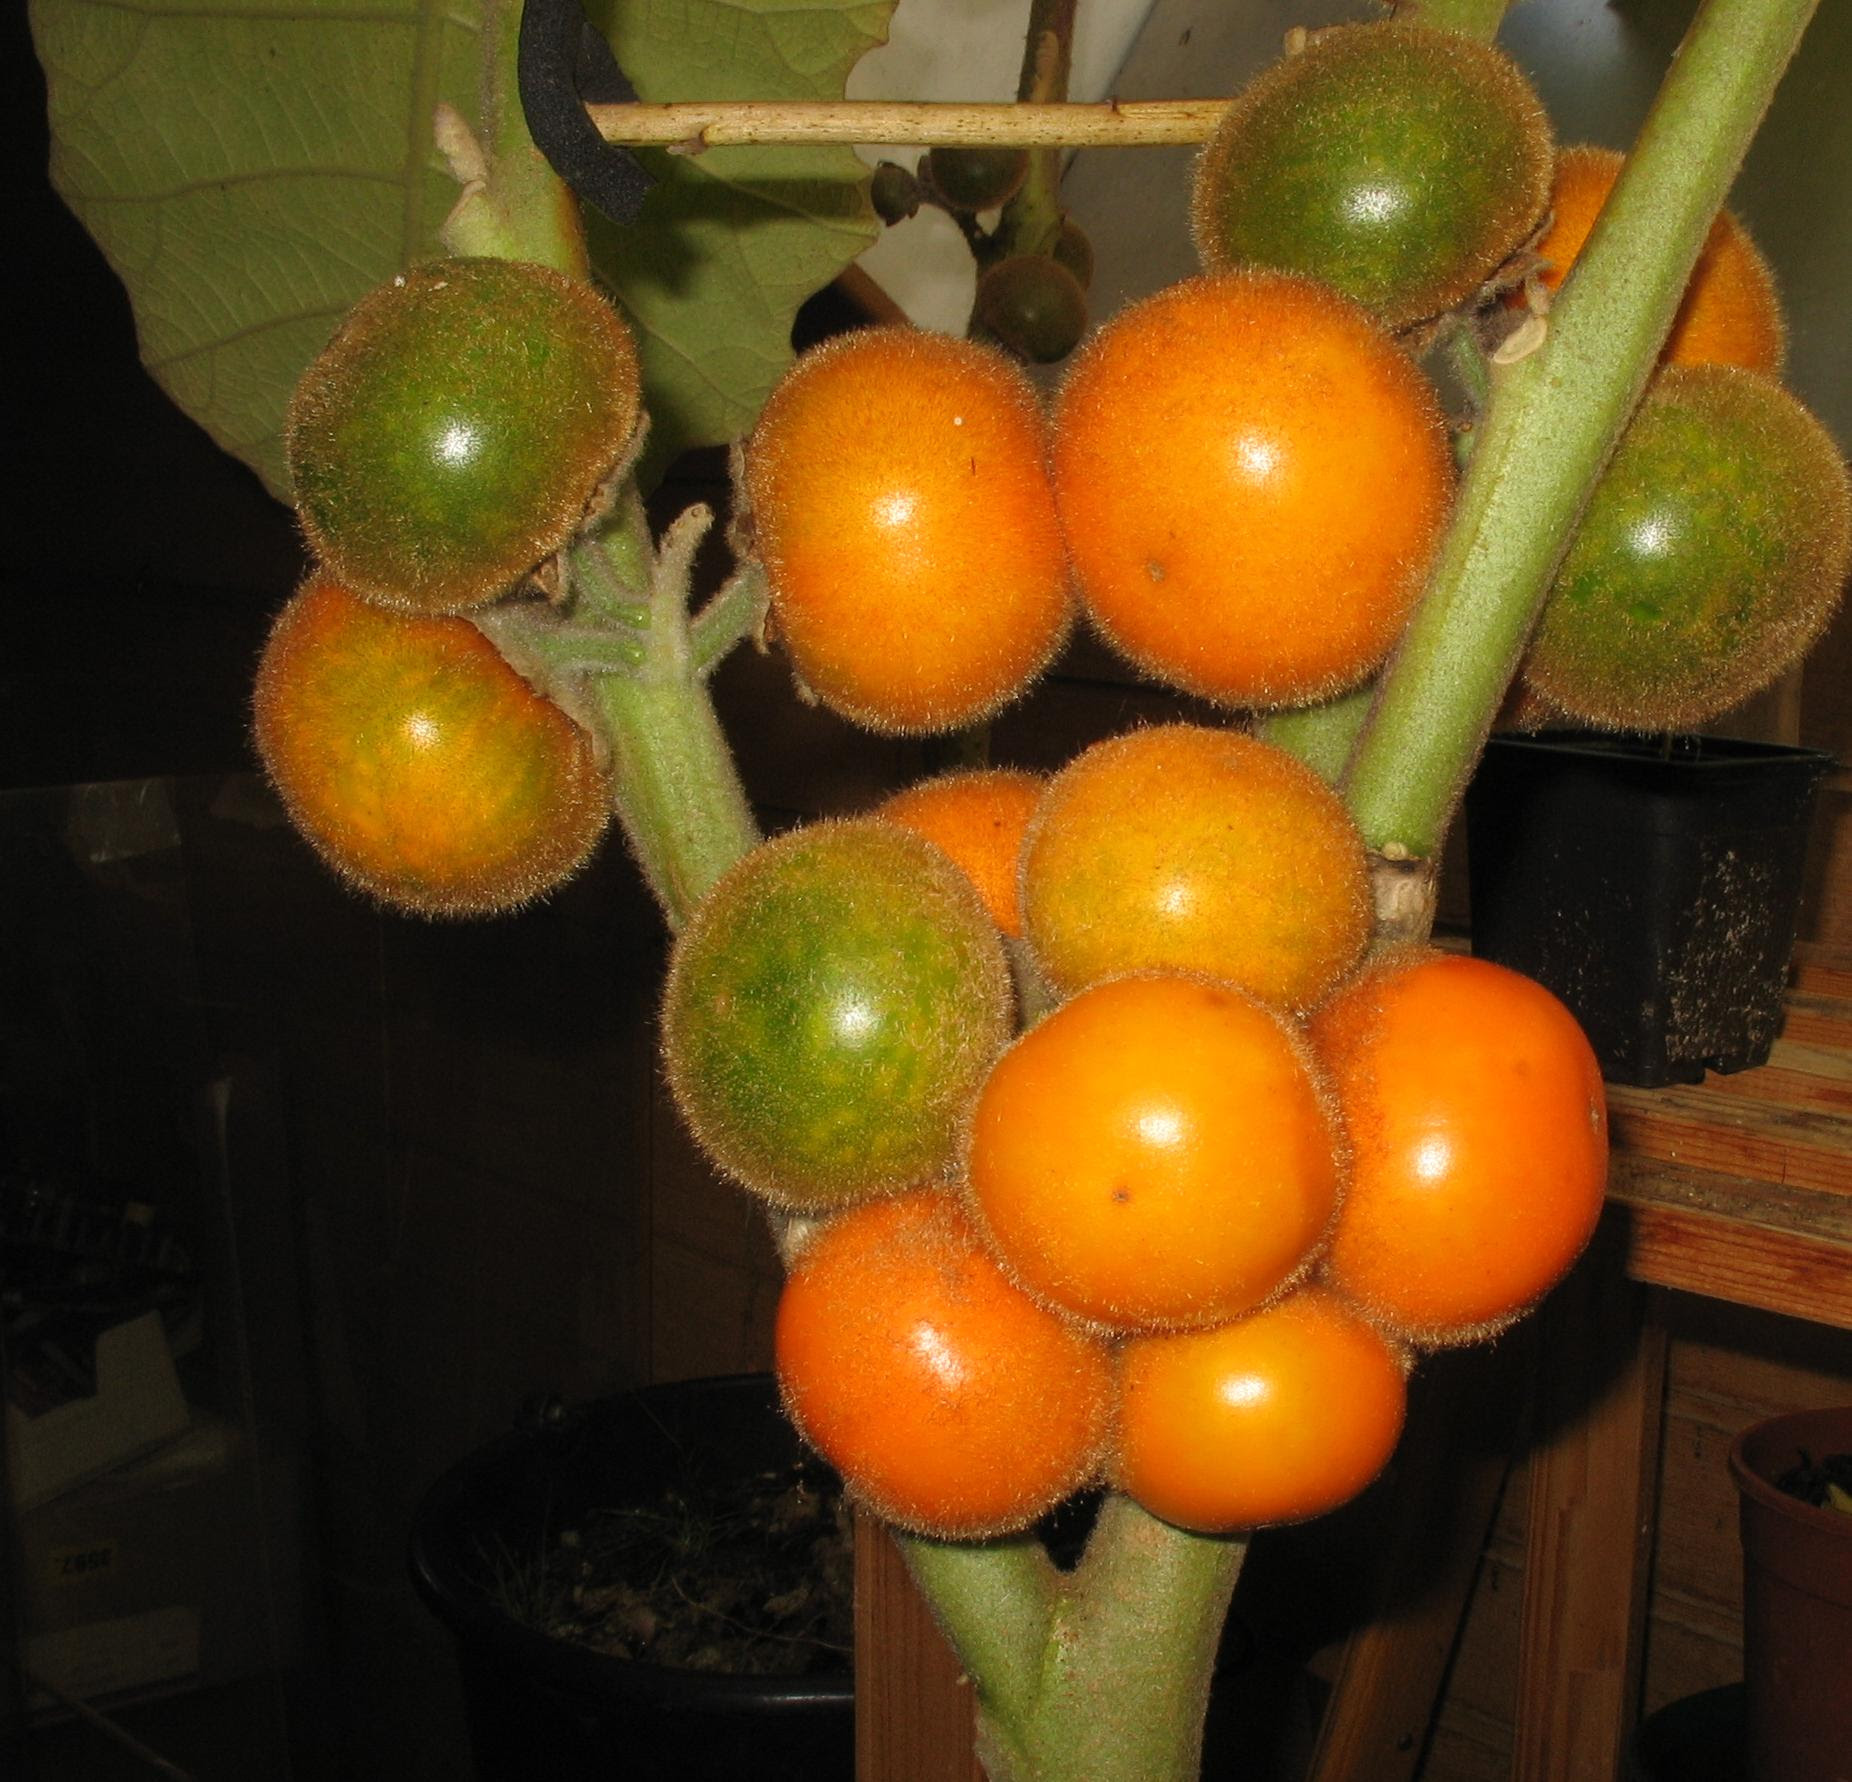 fruto do LULO, solanum quitoense